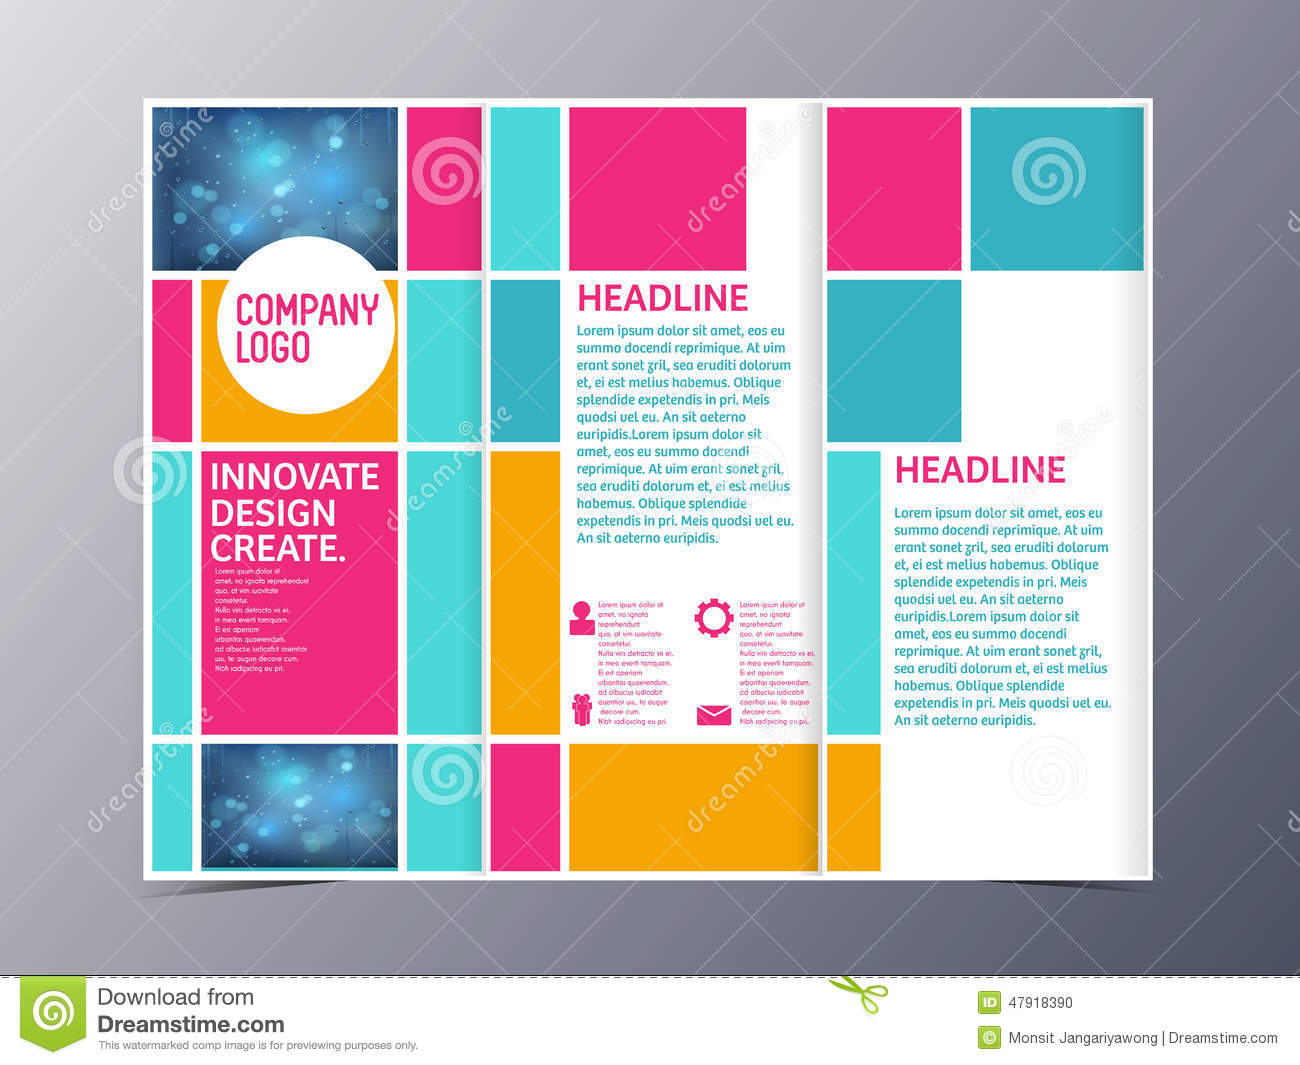 tri fold brochure template design - abstract colorful brochure design template vector tri fold